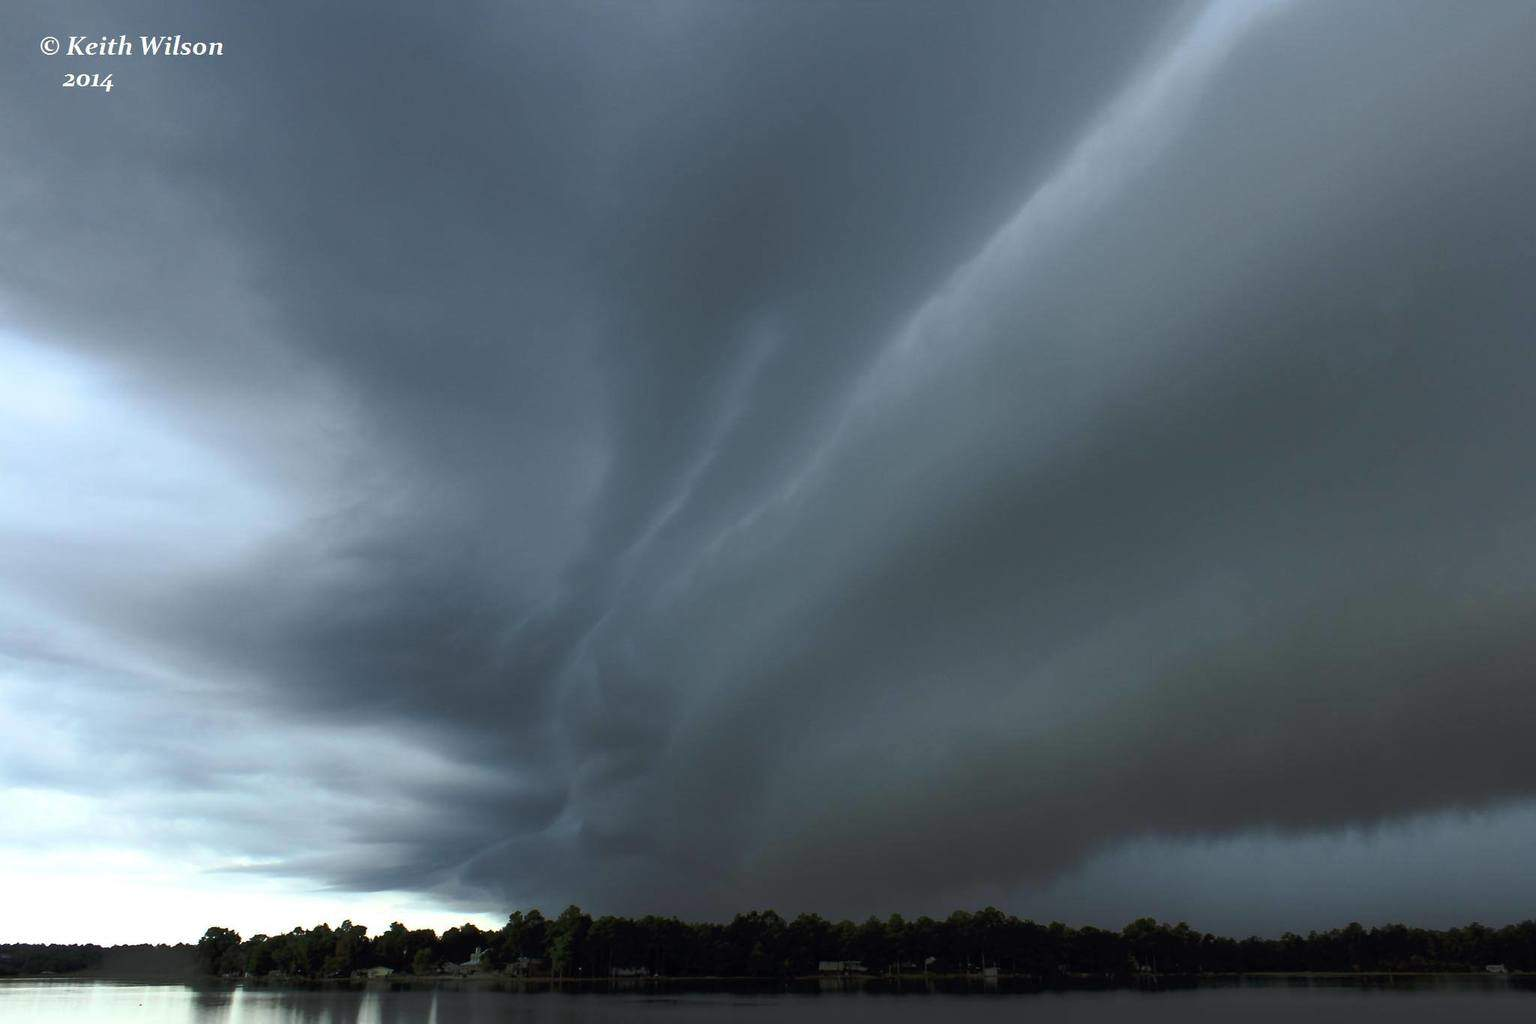 A magical moment from 2013 as this awesome shelf preceded a rather weak storm in the Florida Panhandle.